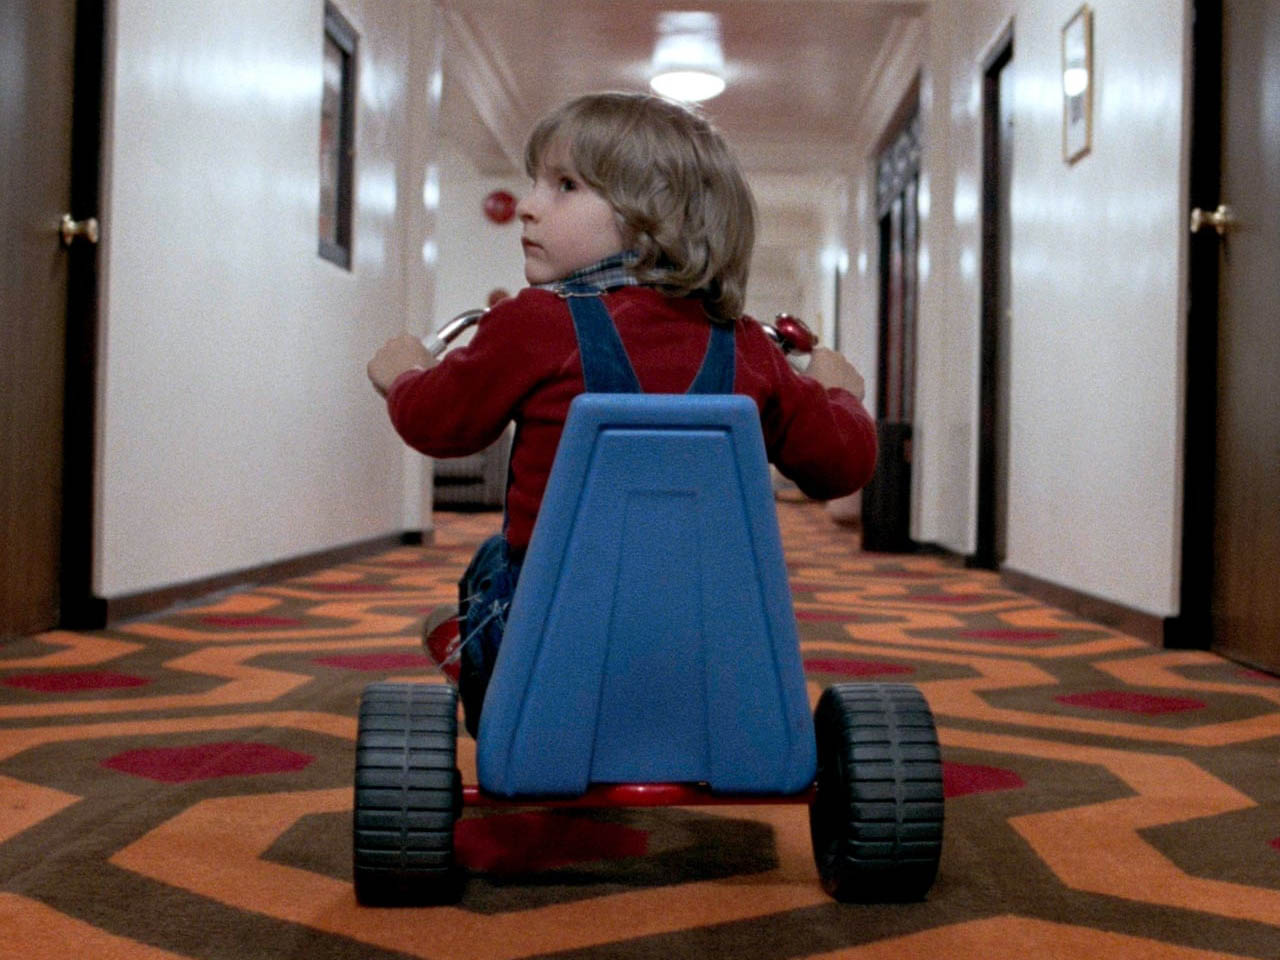 1980 Movie Project - The Shining - 01